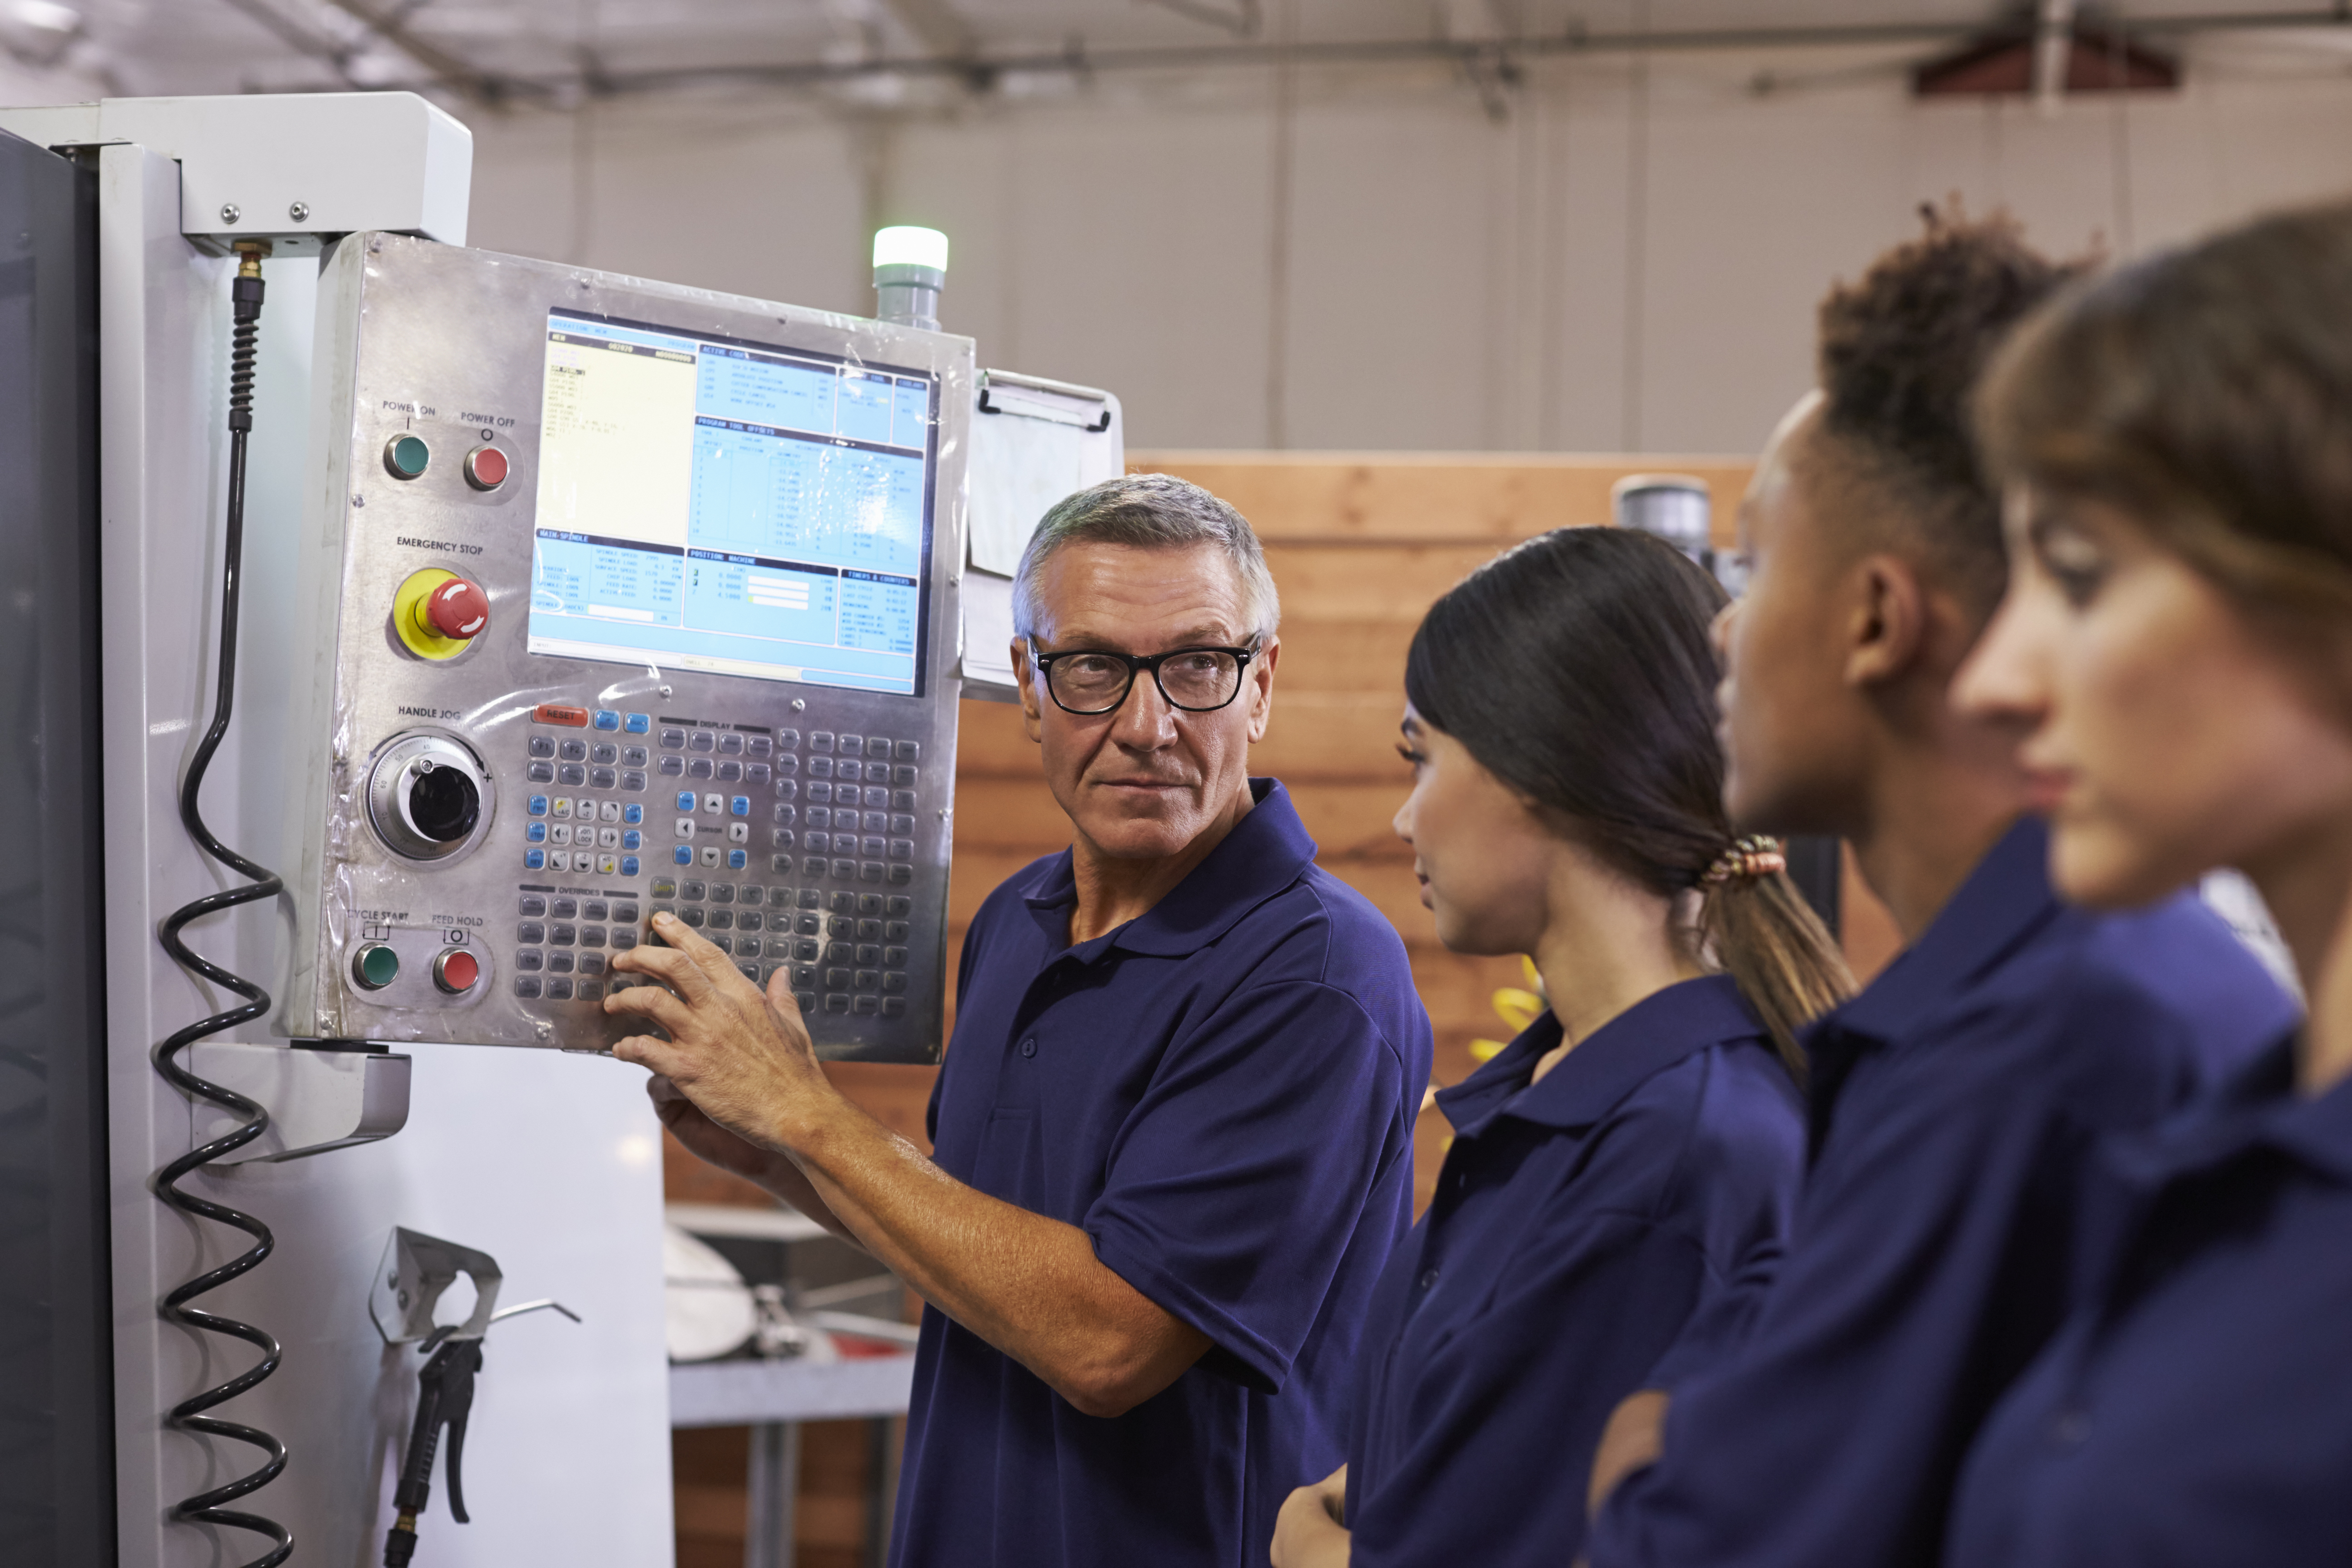 engineer-training-apprentices-on-cnc-machine-PTK2L3S